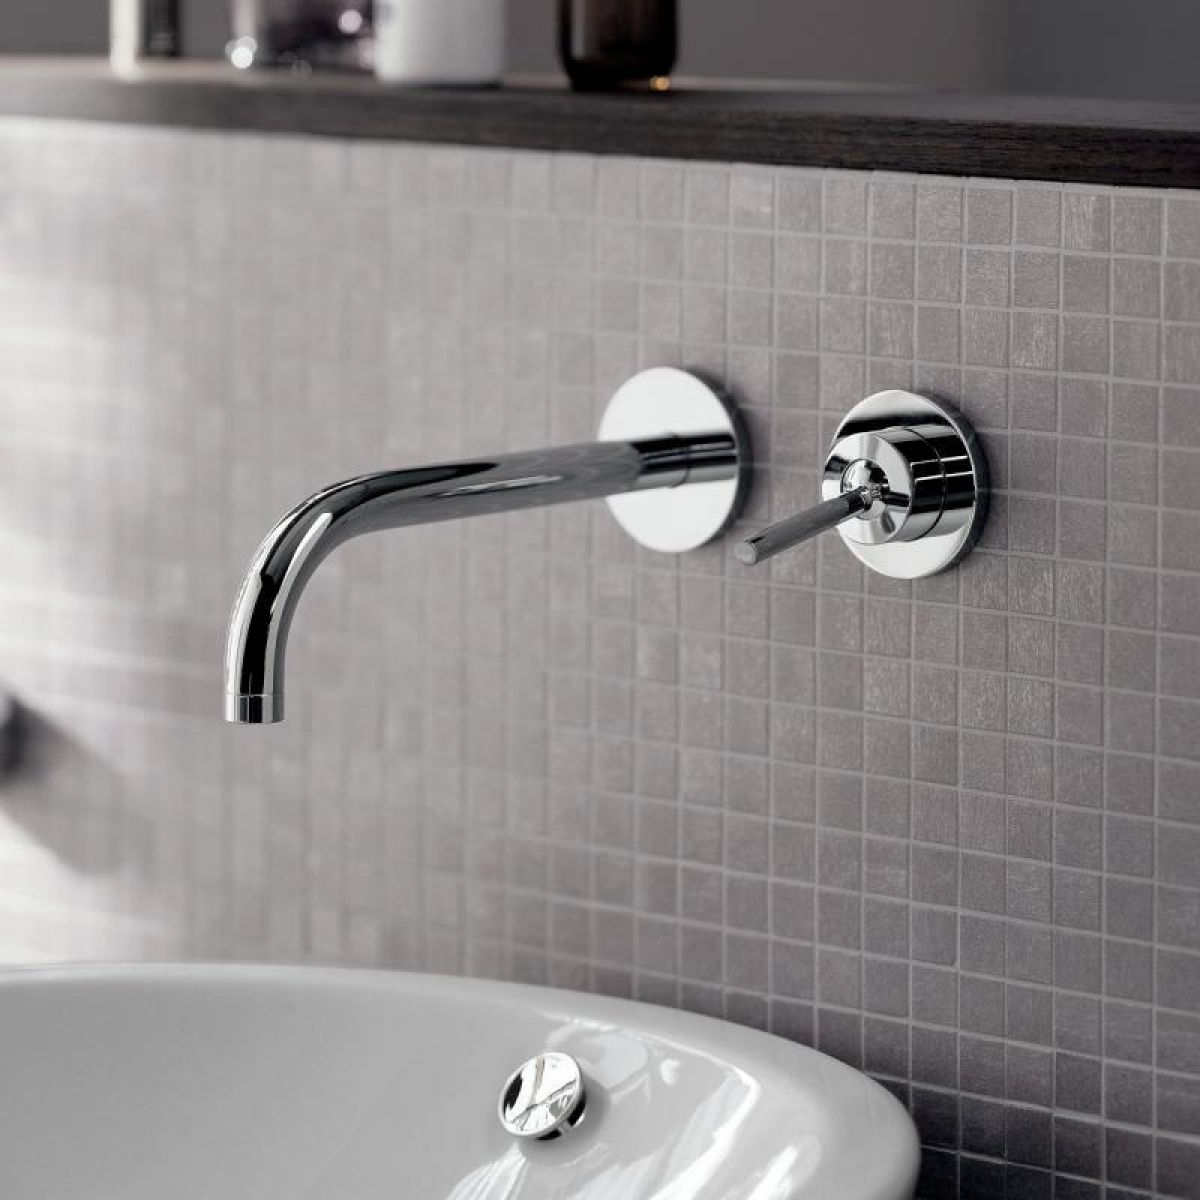 Axor Uno Wall Mounted Basin Mixer Tap Uk Bathrooms